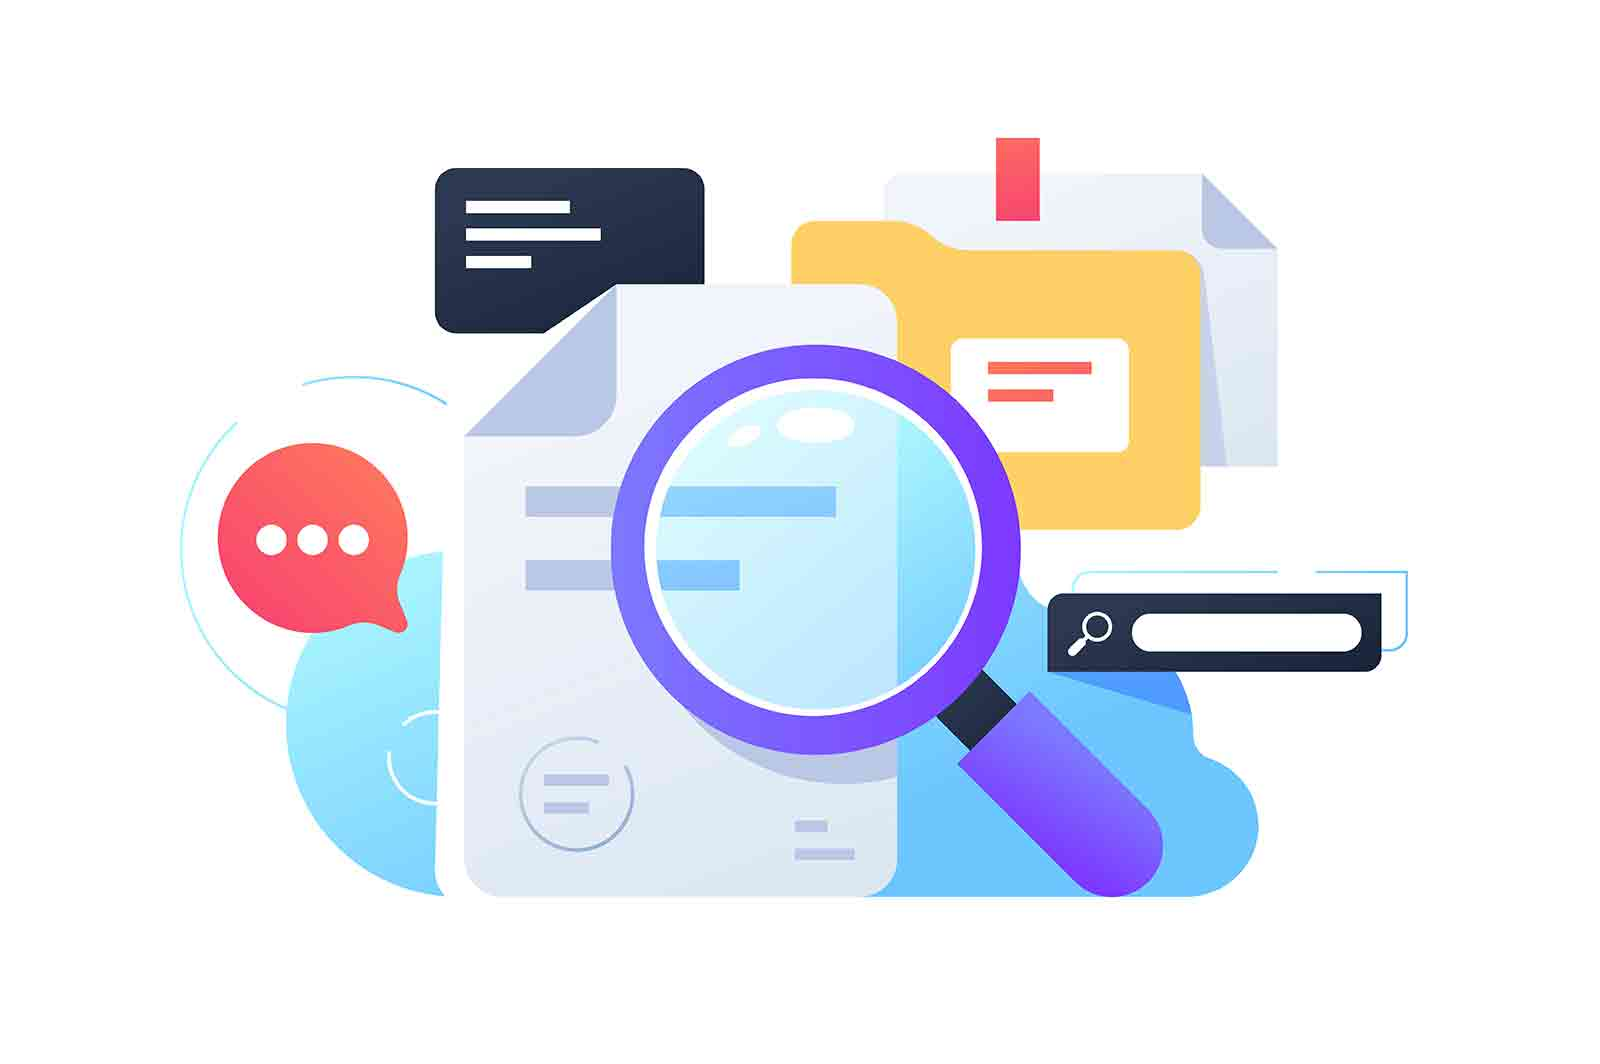 Magnifier searching information using documents and internet. Isolated concept equipment for collection data using web service, folders and online. Vector illustration.